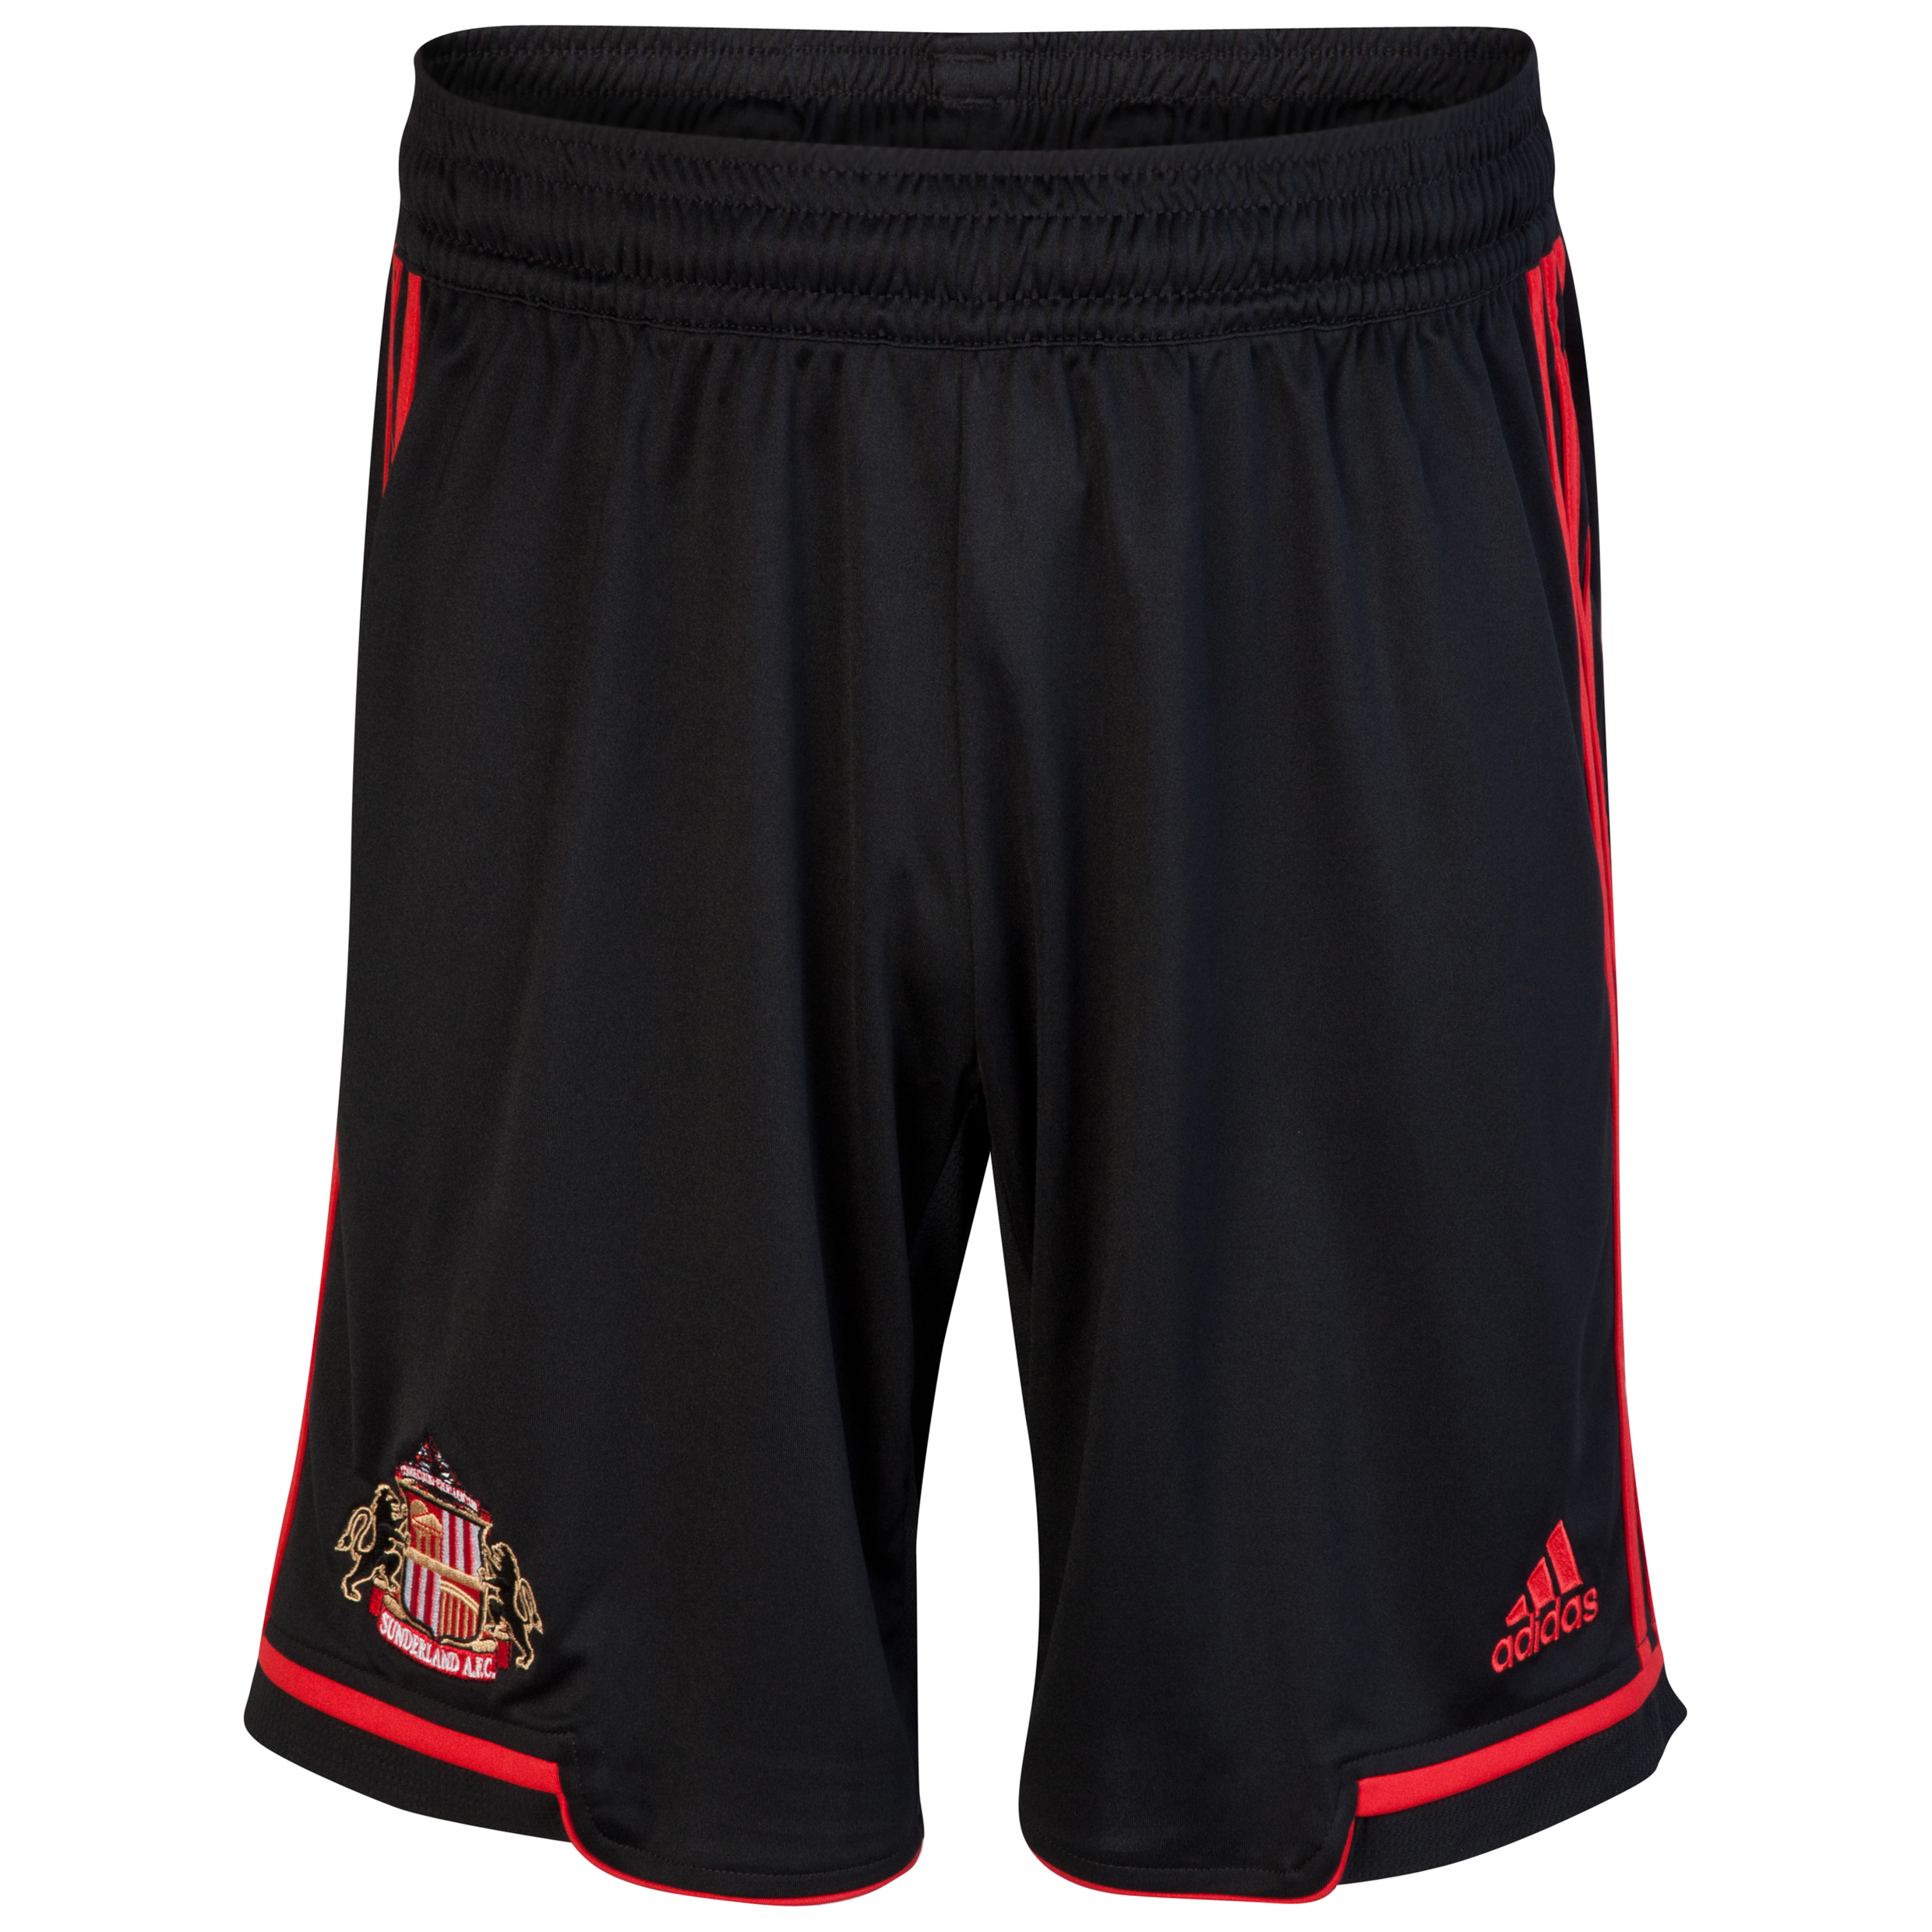 Sunderland Home Short 2012/13